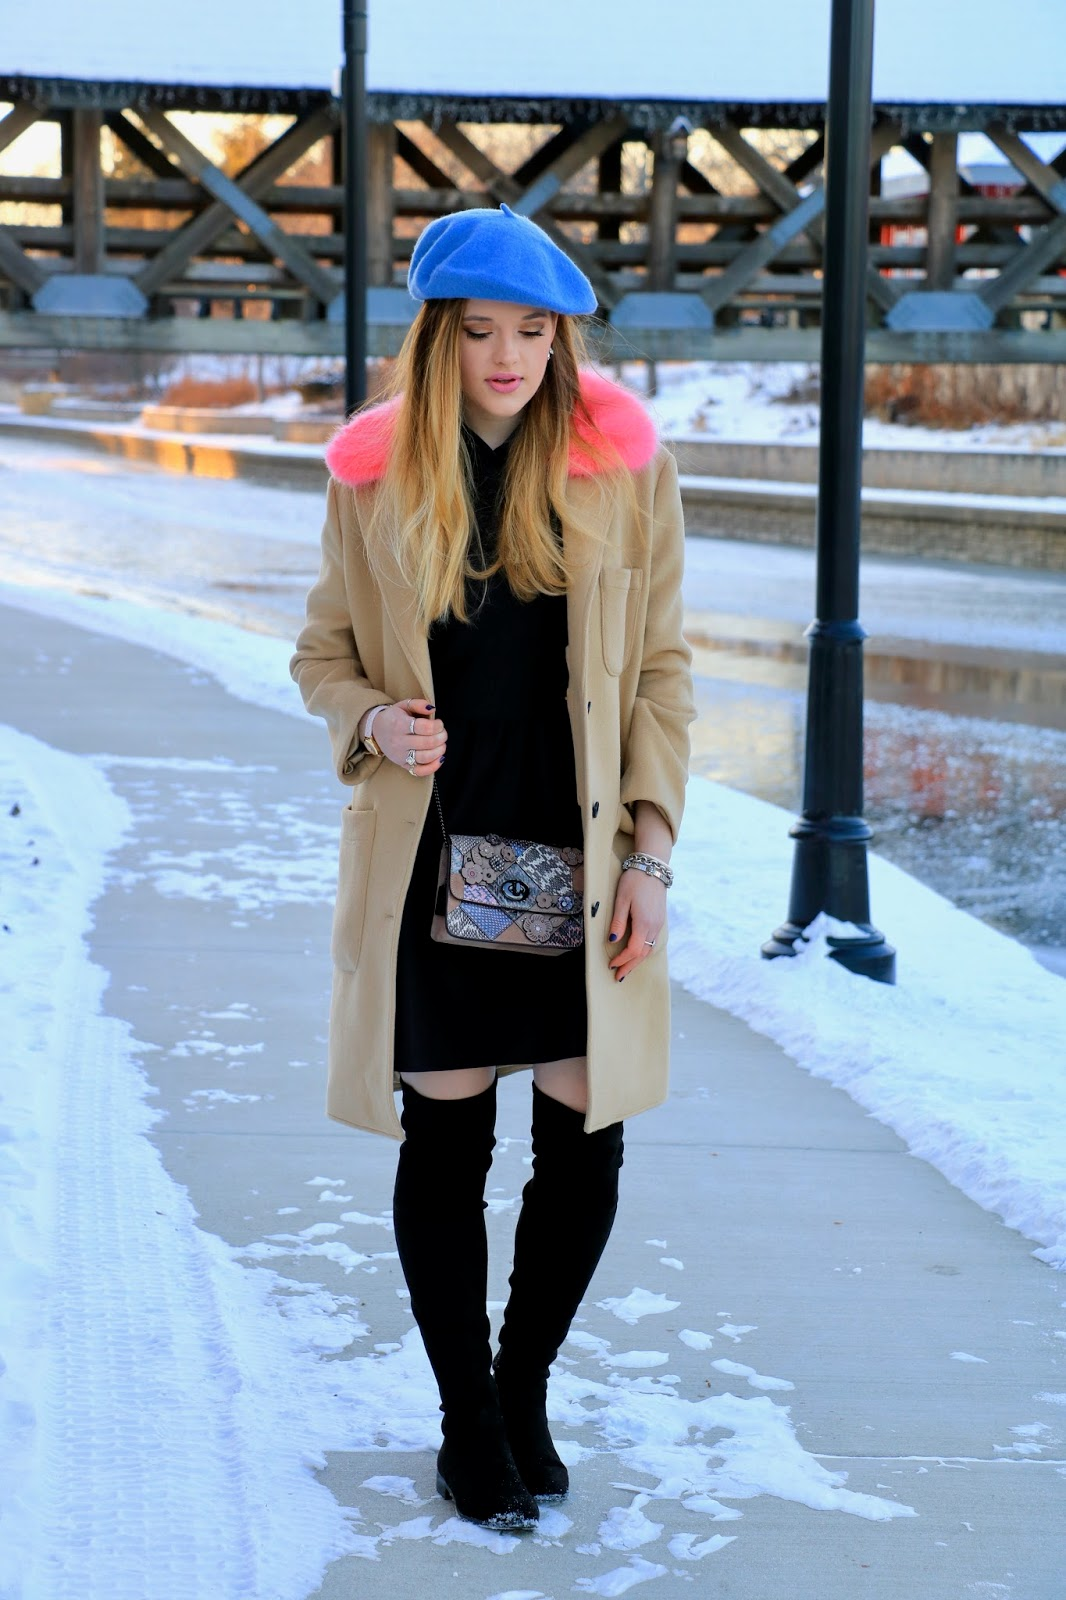 Nyc fashion blogger Kathleen Harper wearing a cute winter coat